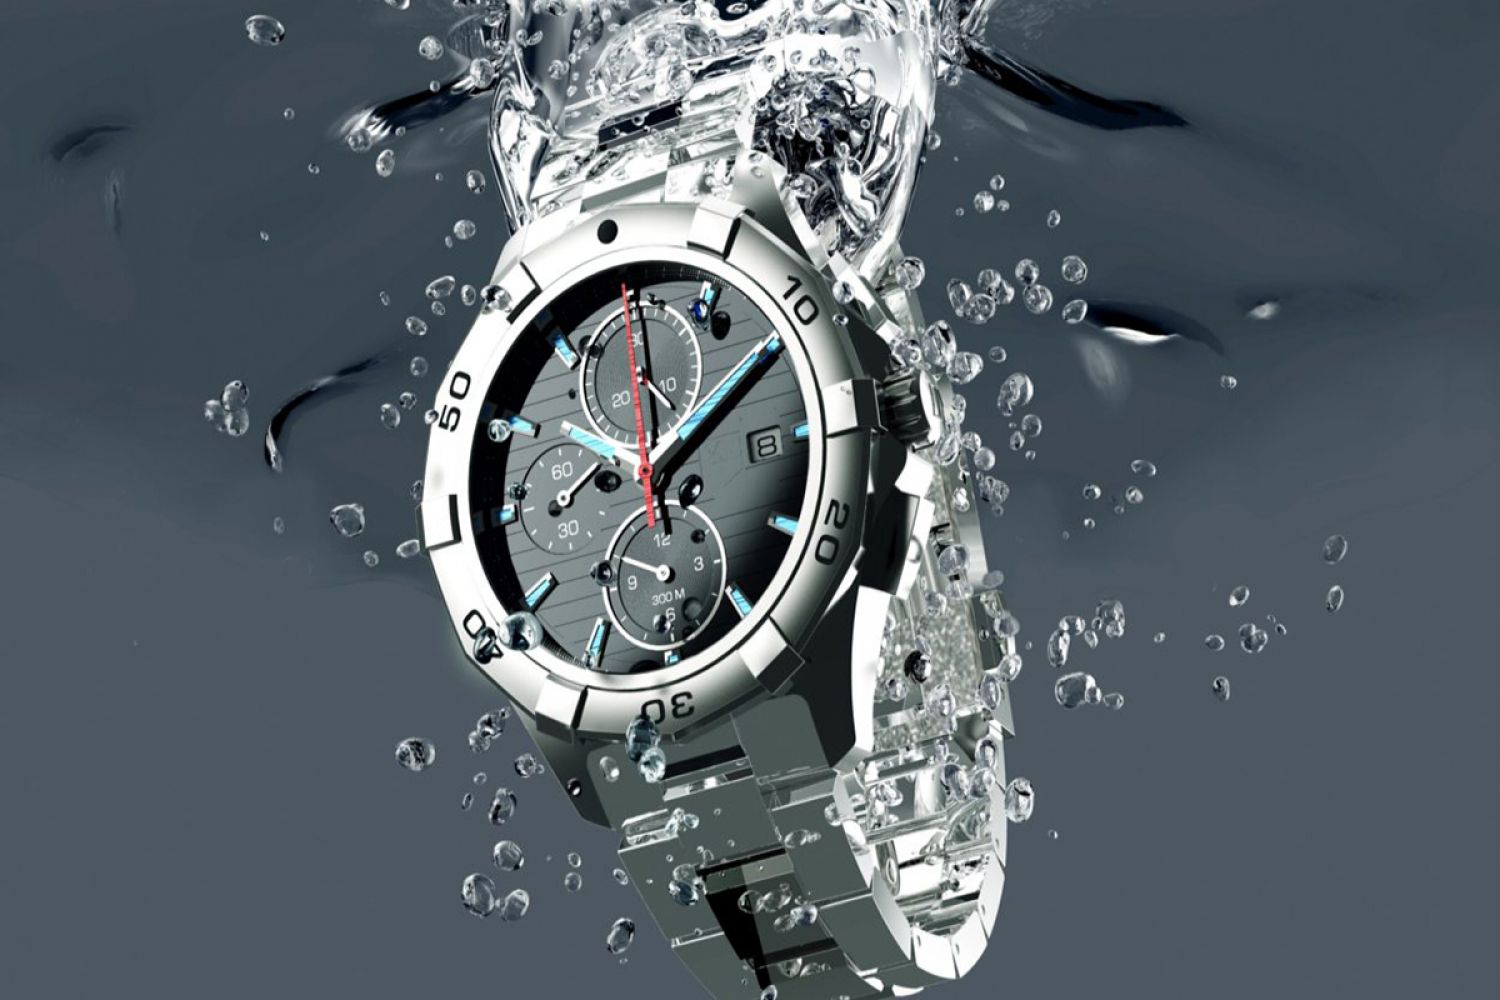 WATERPROOF WATCH, OR HOW DEEP CAN YOU DIVE SO THAT NOT TO REGRET ABOUT IT THEN?